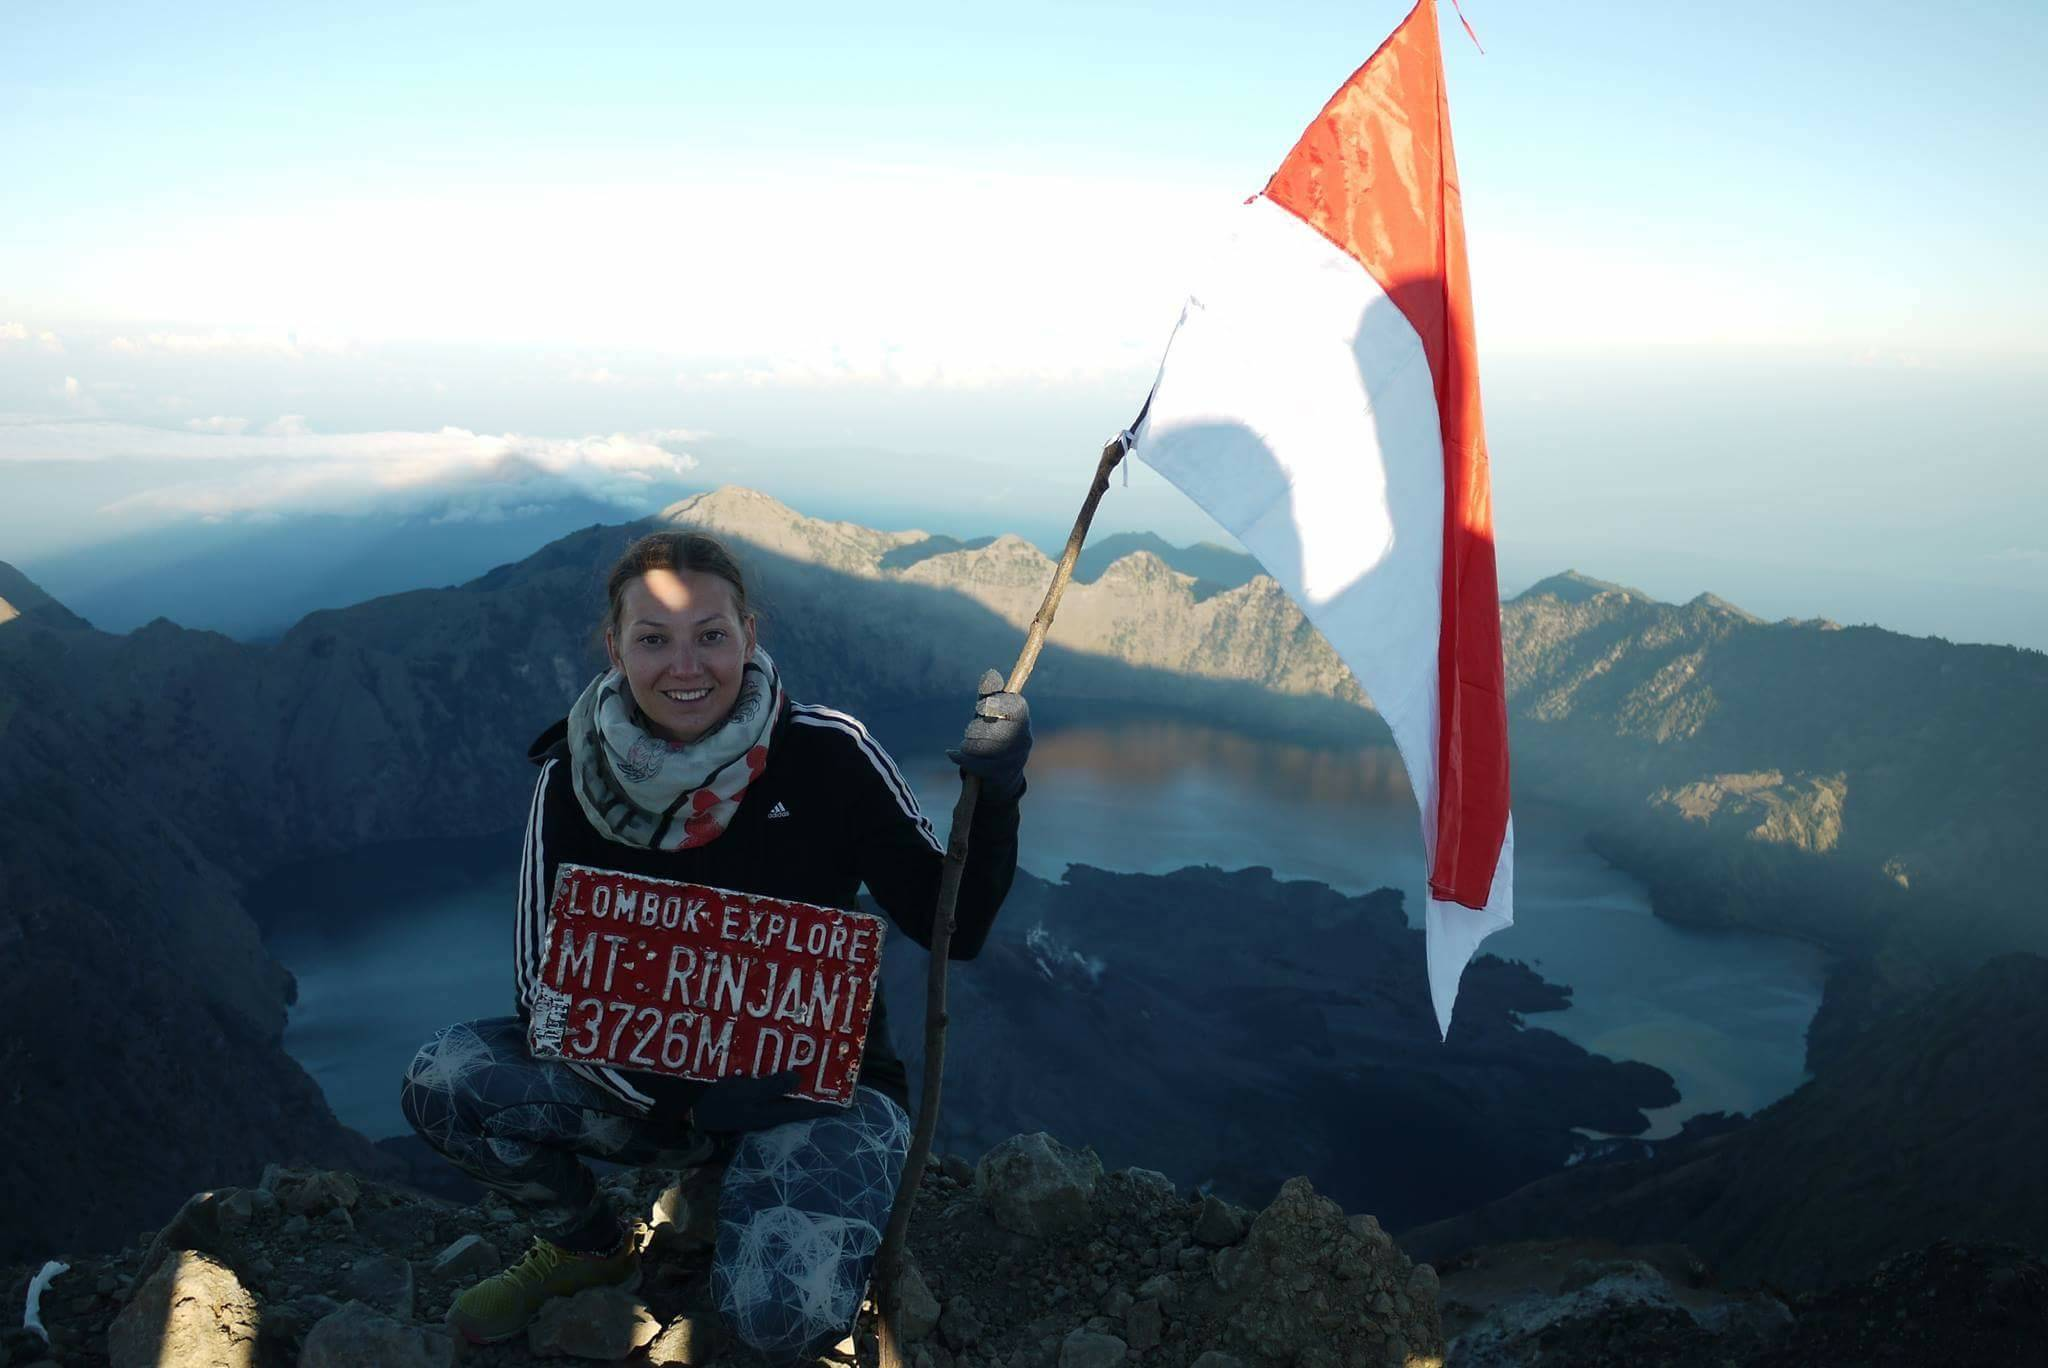 I conquered the Rinjani